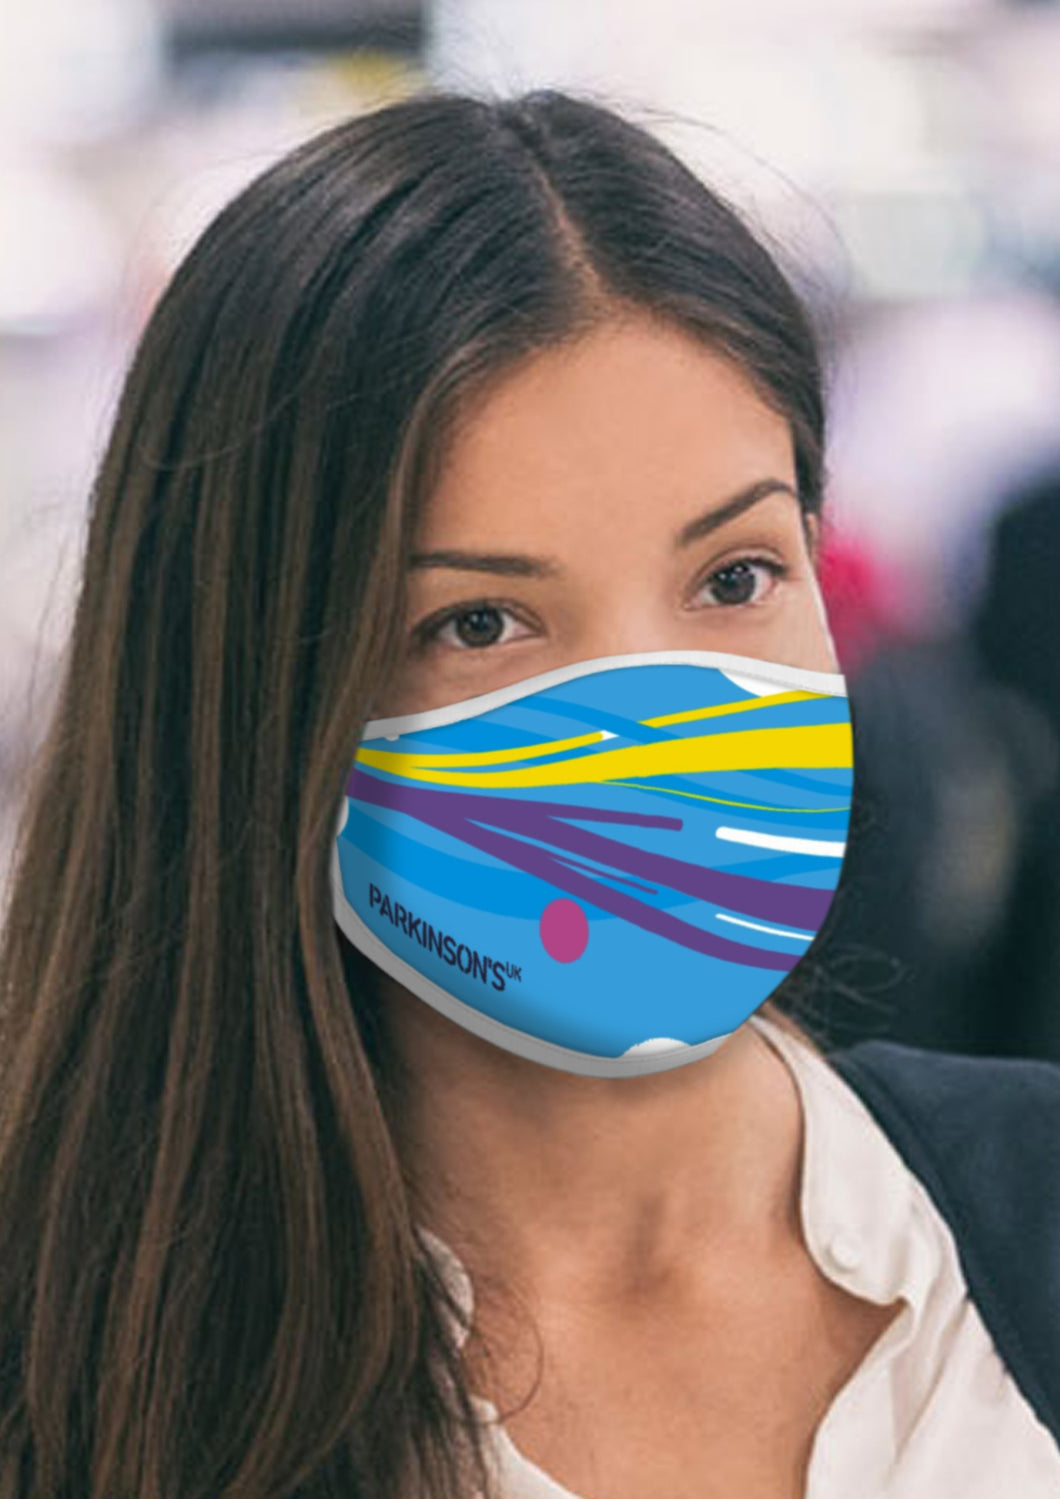 Parkinson's UK face mask with ties